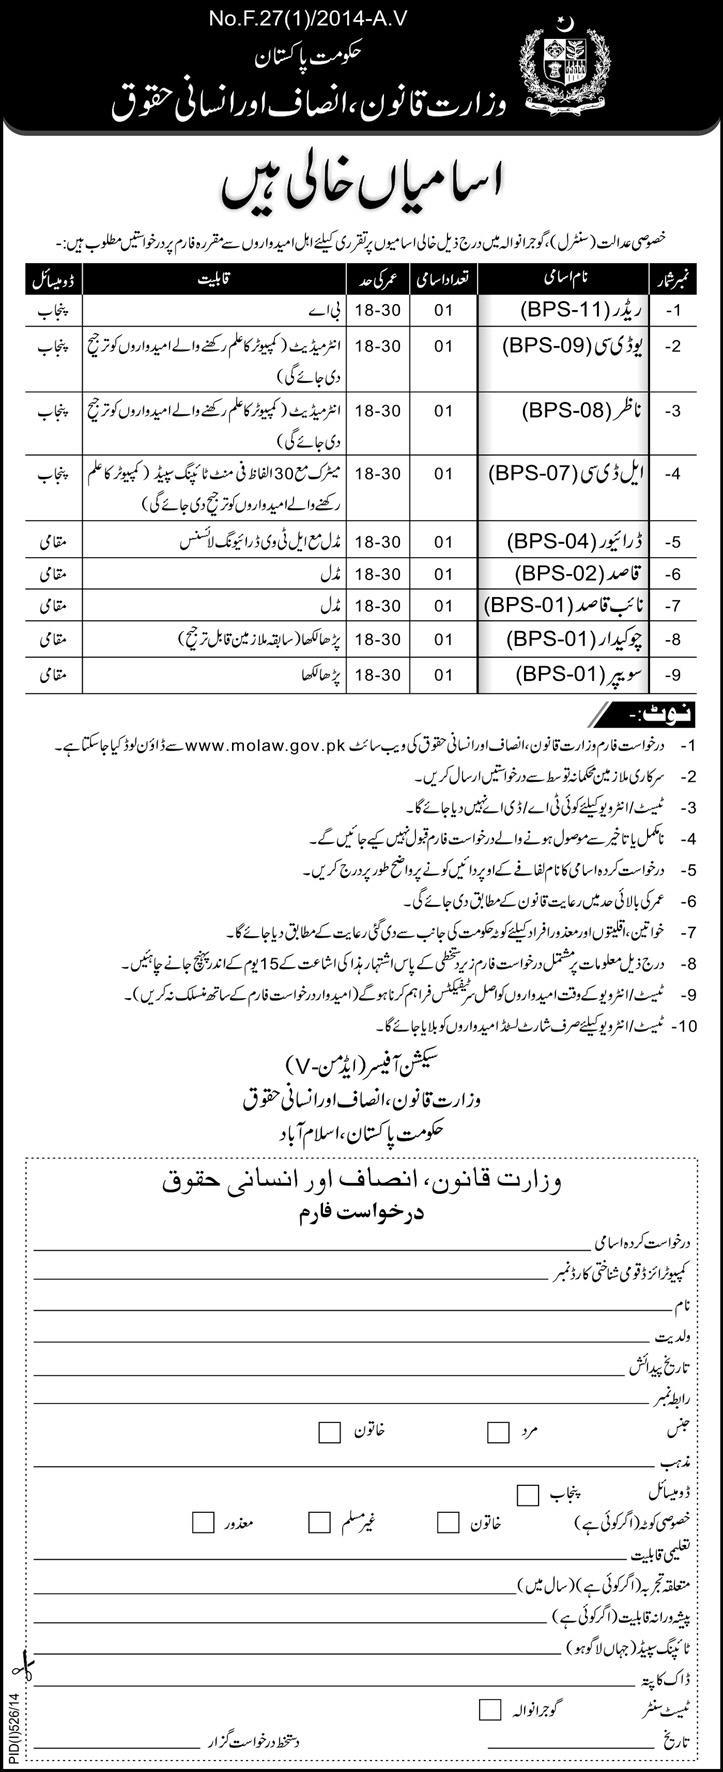 Ministry of law justice human rights pakistan jobs 2014 august ministry of law justice human rights pakistan jobs 2014 august application form falaconquin